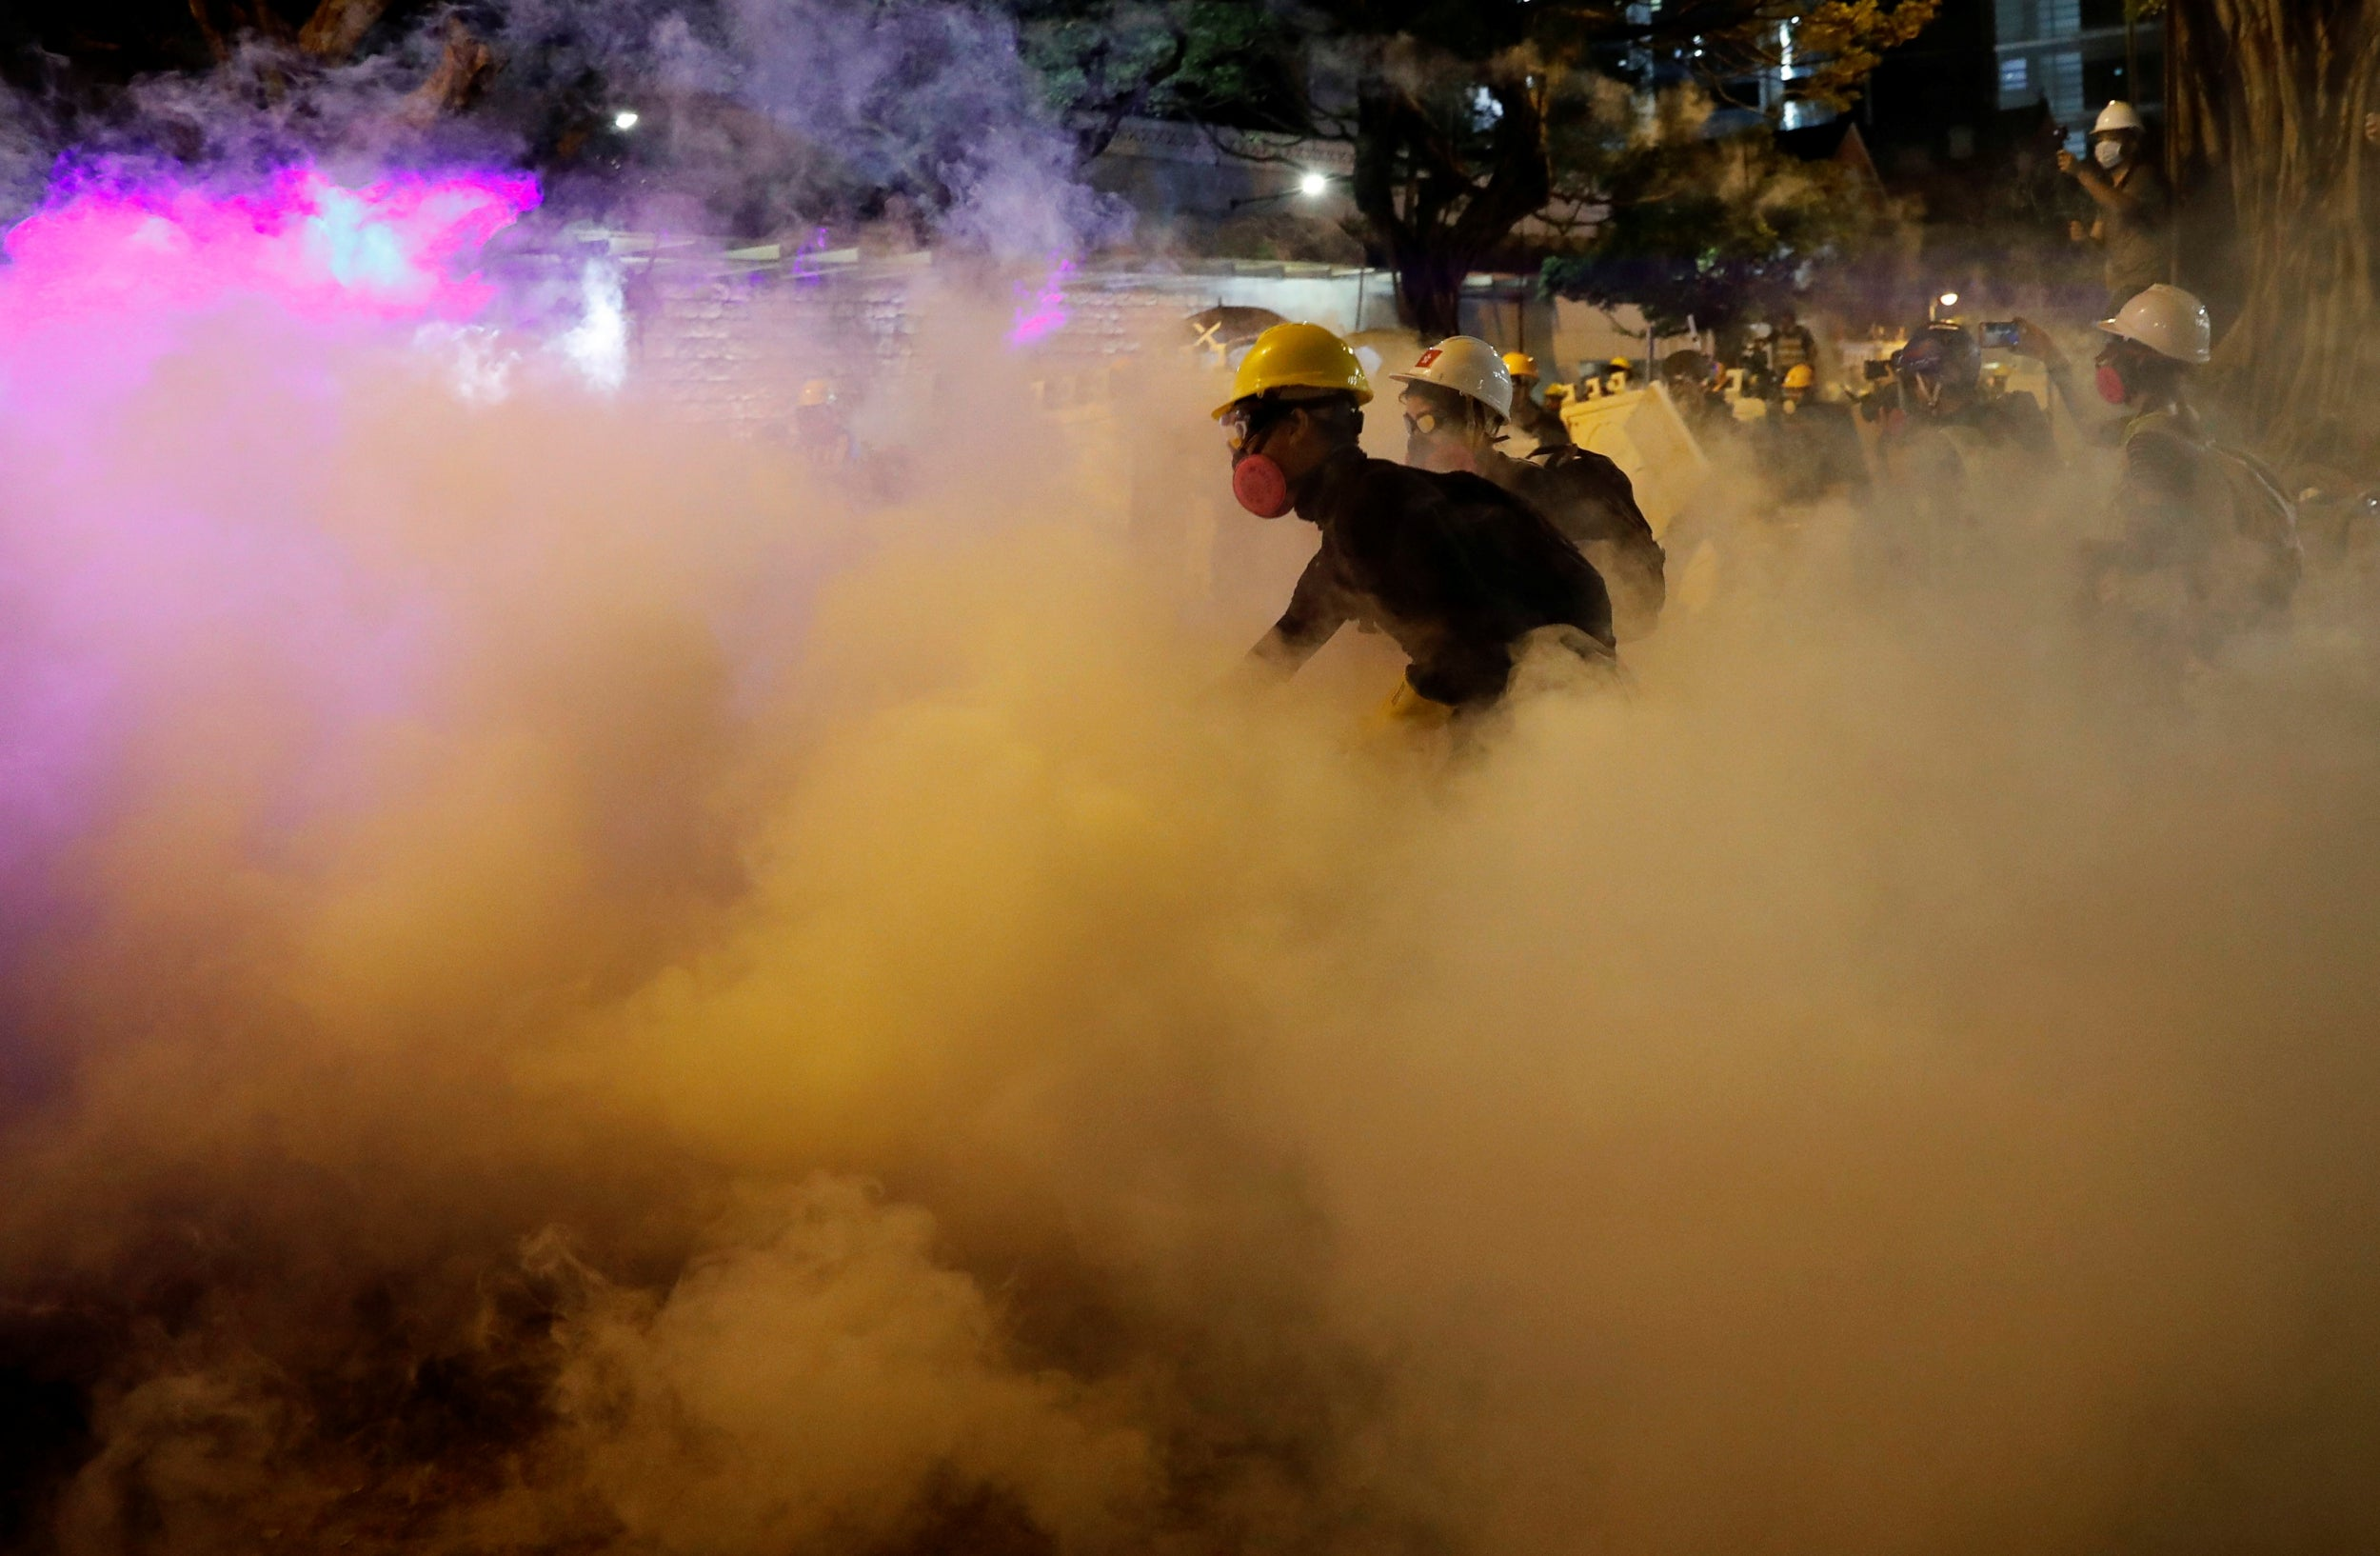 Be water': Hong Kong protesters adopt Bruce Lee tactic to evade